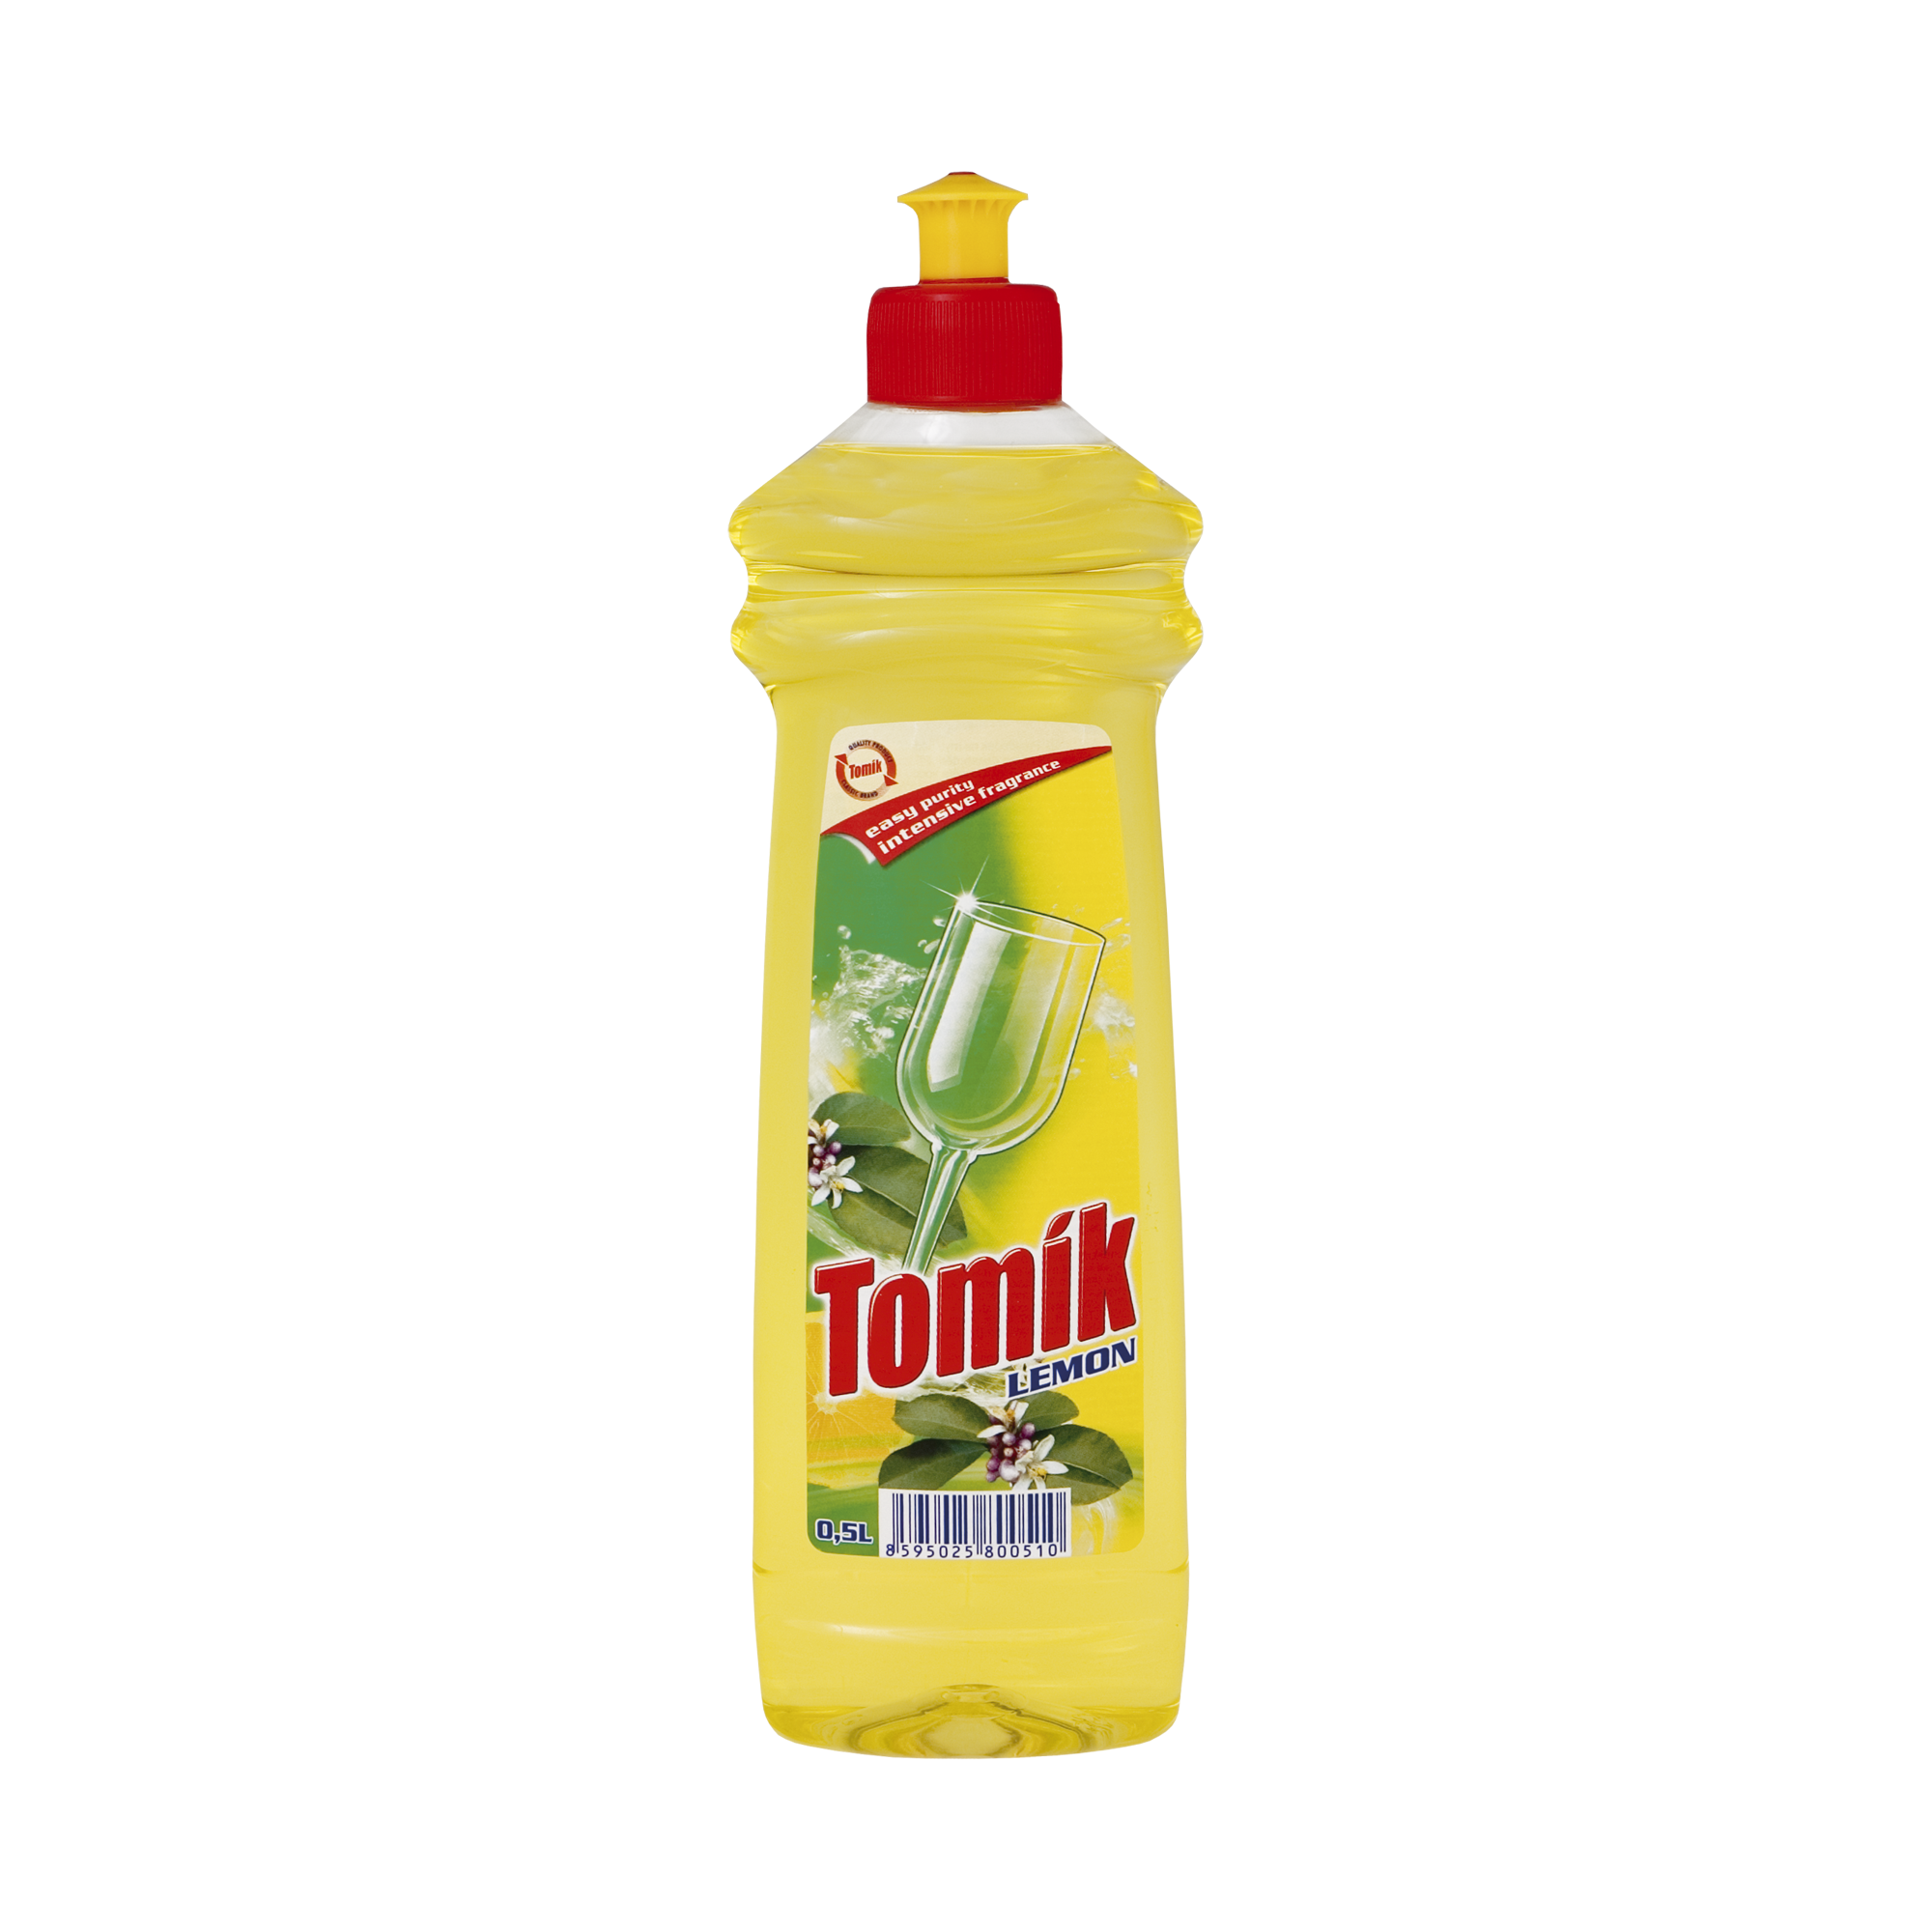 Tomík płyn do naczyń Lemon